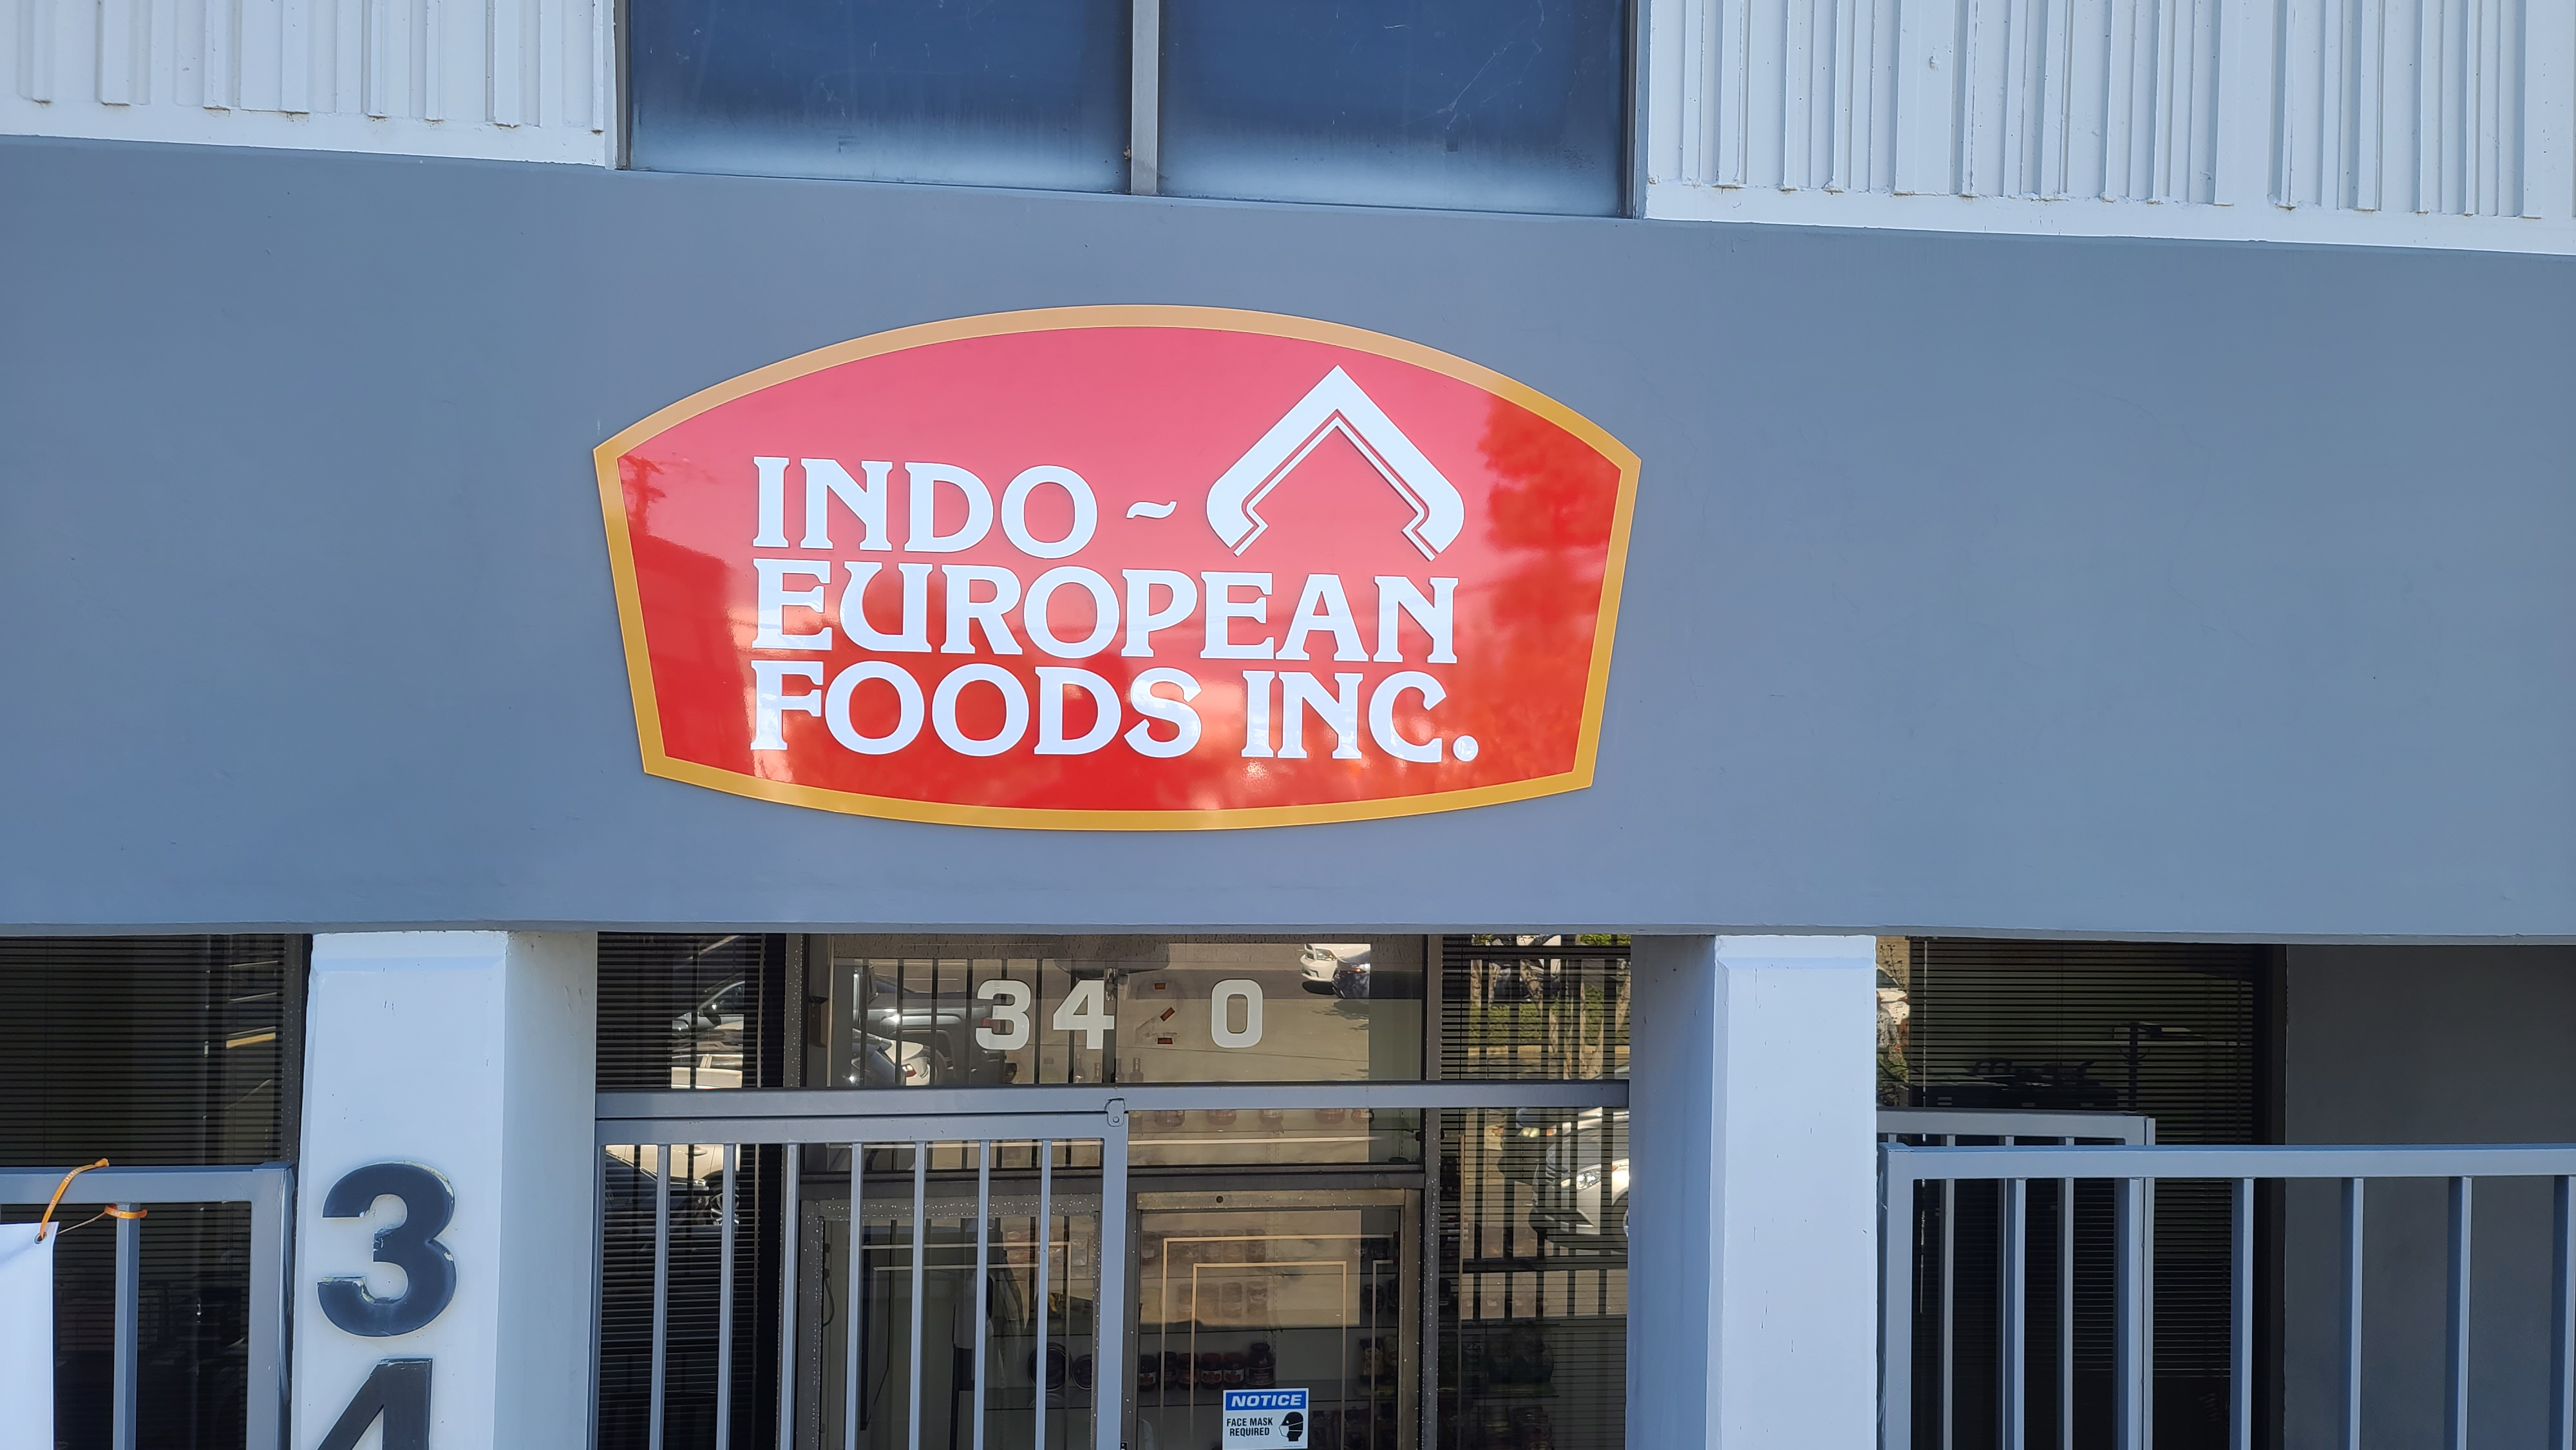 With this custom business sign package Indo-European's establishment in Commerce looks more visually attractive.